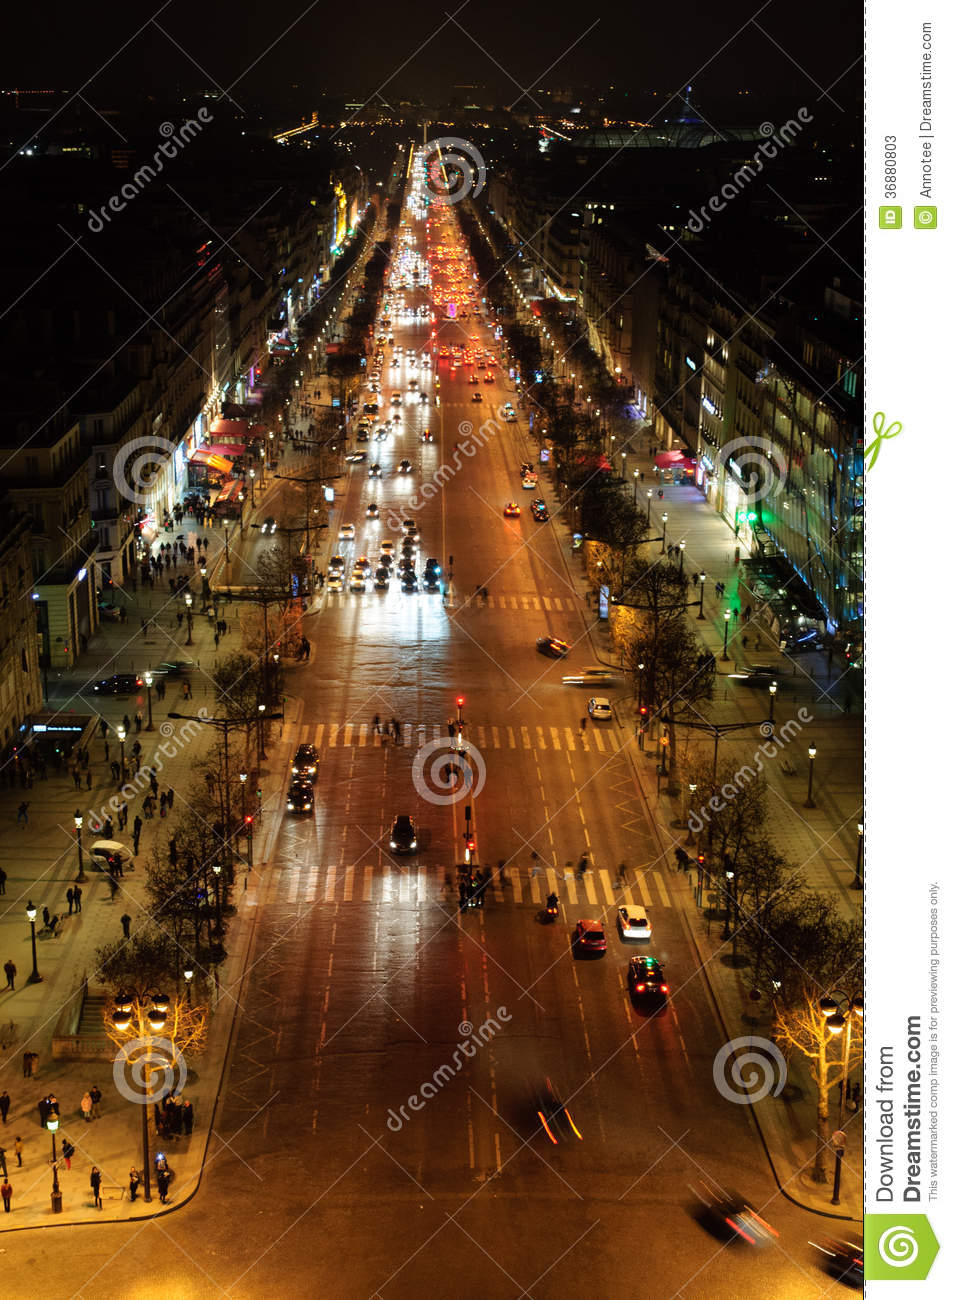 shanzelize paris map with Stock Photos Shanzelize Night Paris Image36880803 on Stock Photos Shanzelize Night Paris Image36880803 additionally File Gare du Nord night Paris FRA 002 furthermore Wonderful Place Ch s Elysees In Paris additionally Tourism G187147 Paris Ile de France Vacations moreover Photos Levallois Perret.